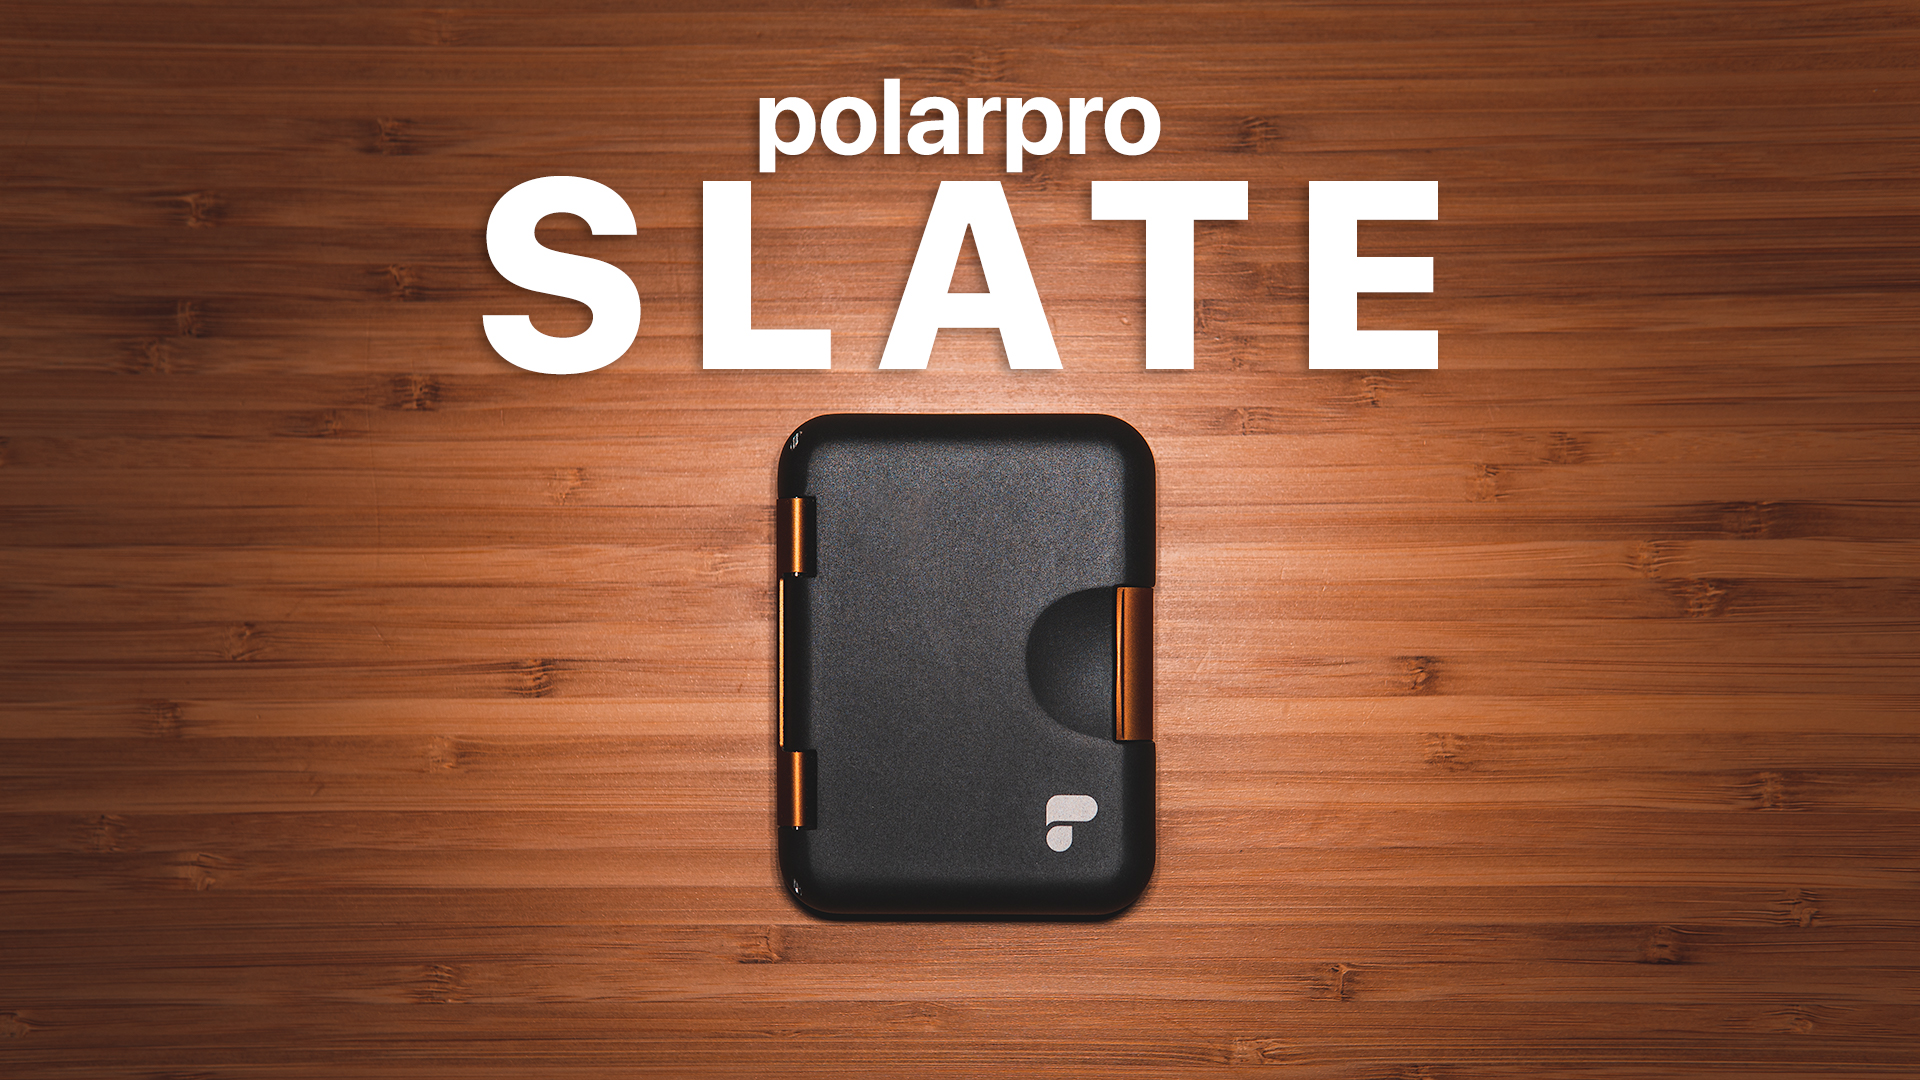 Introducing The ULTIMATE Protection & Organization: PolarPro Slate